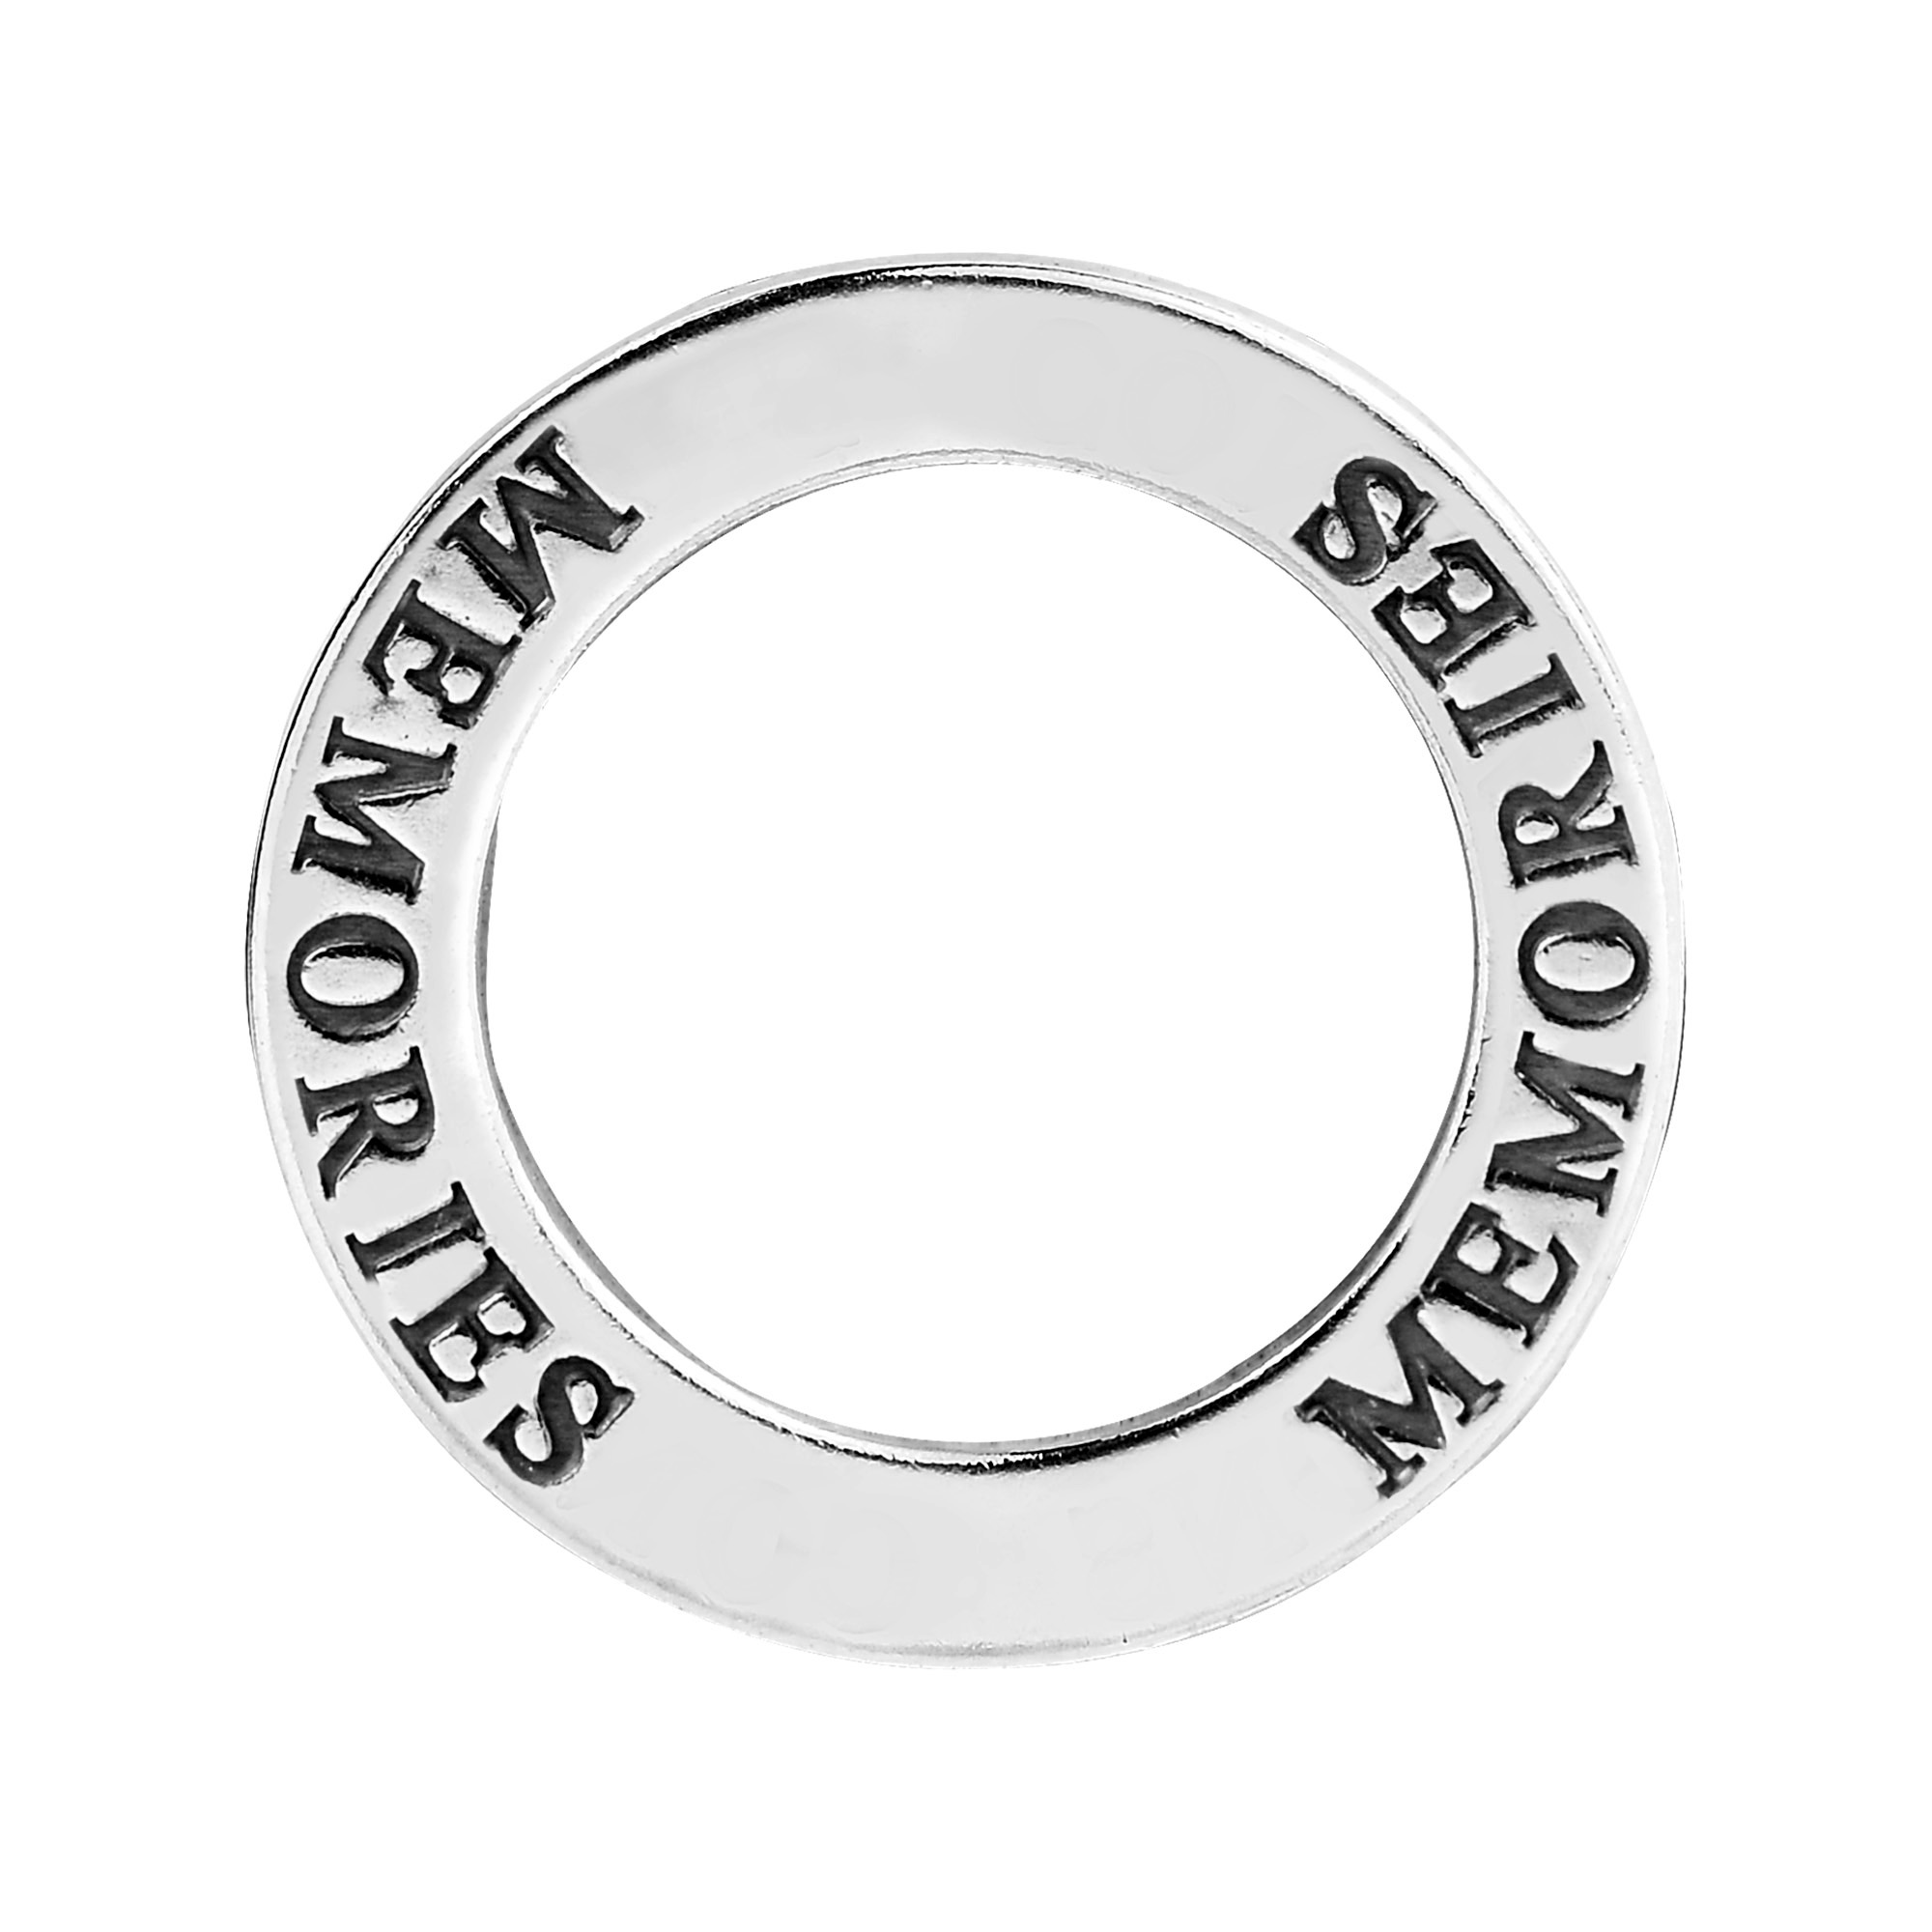 Inspirational word memories on sterling silver circle pendant aeravida these inspirational pendants feature a single word that can carry a powerful message made from sterling silver these pendants can provide a daily aloadofball Choice Image